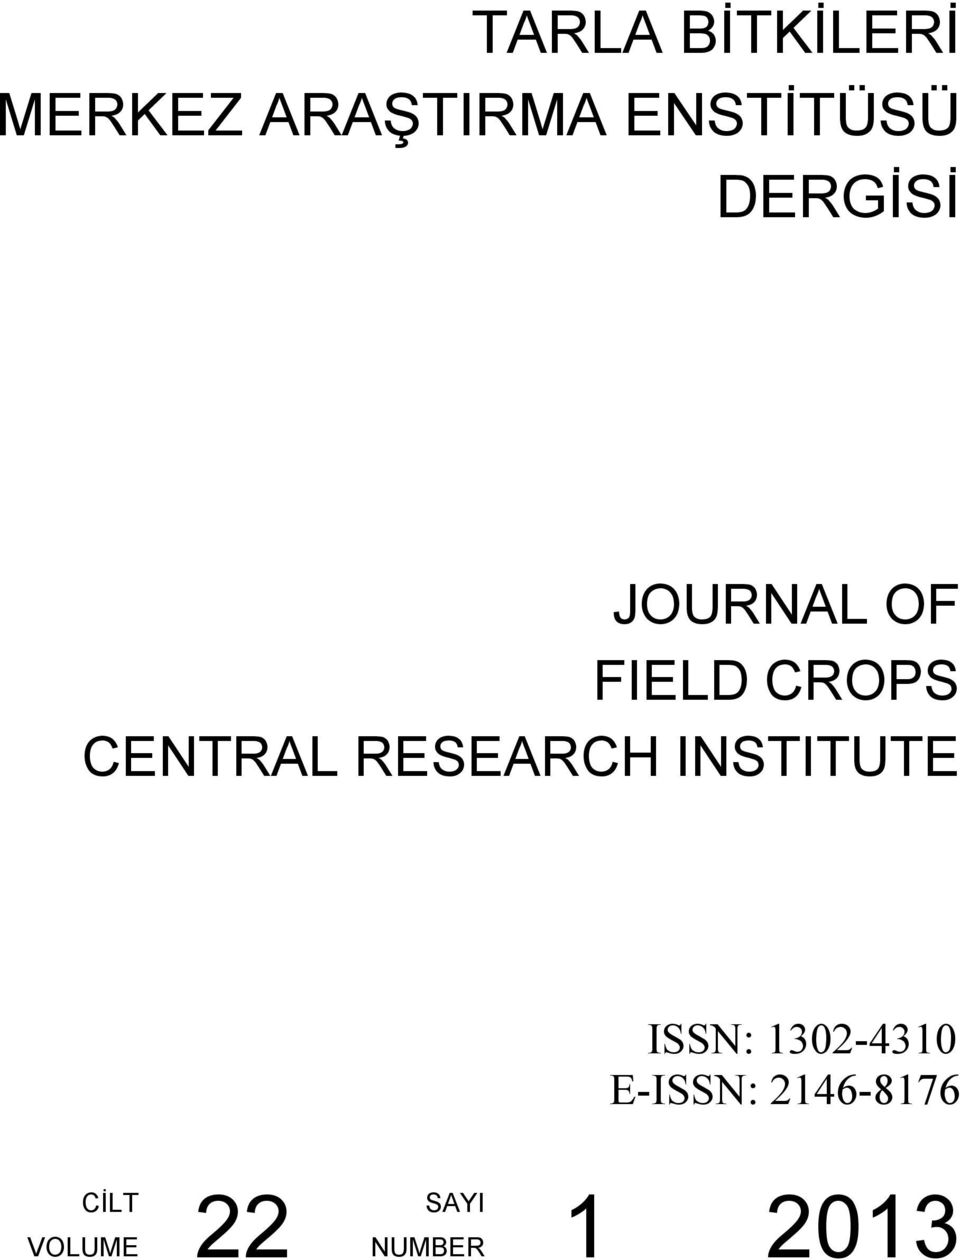 CENTRAL RESEARCH INSTITUTE ISSN: